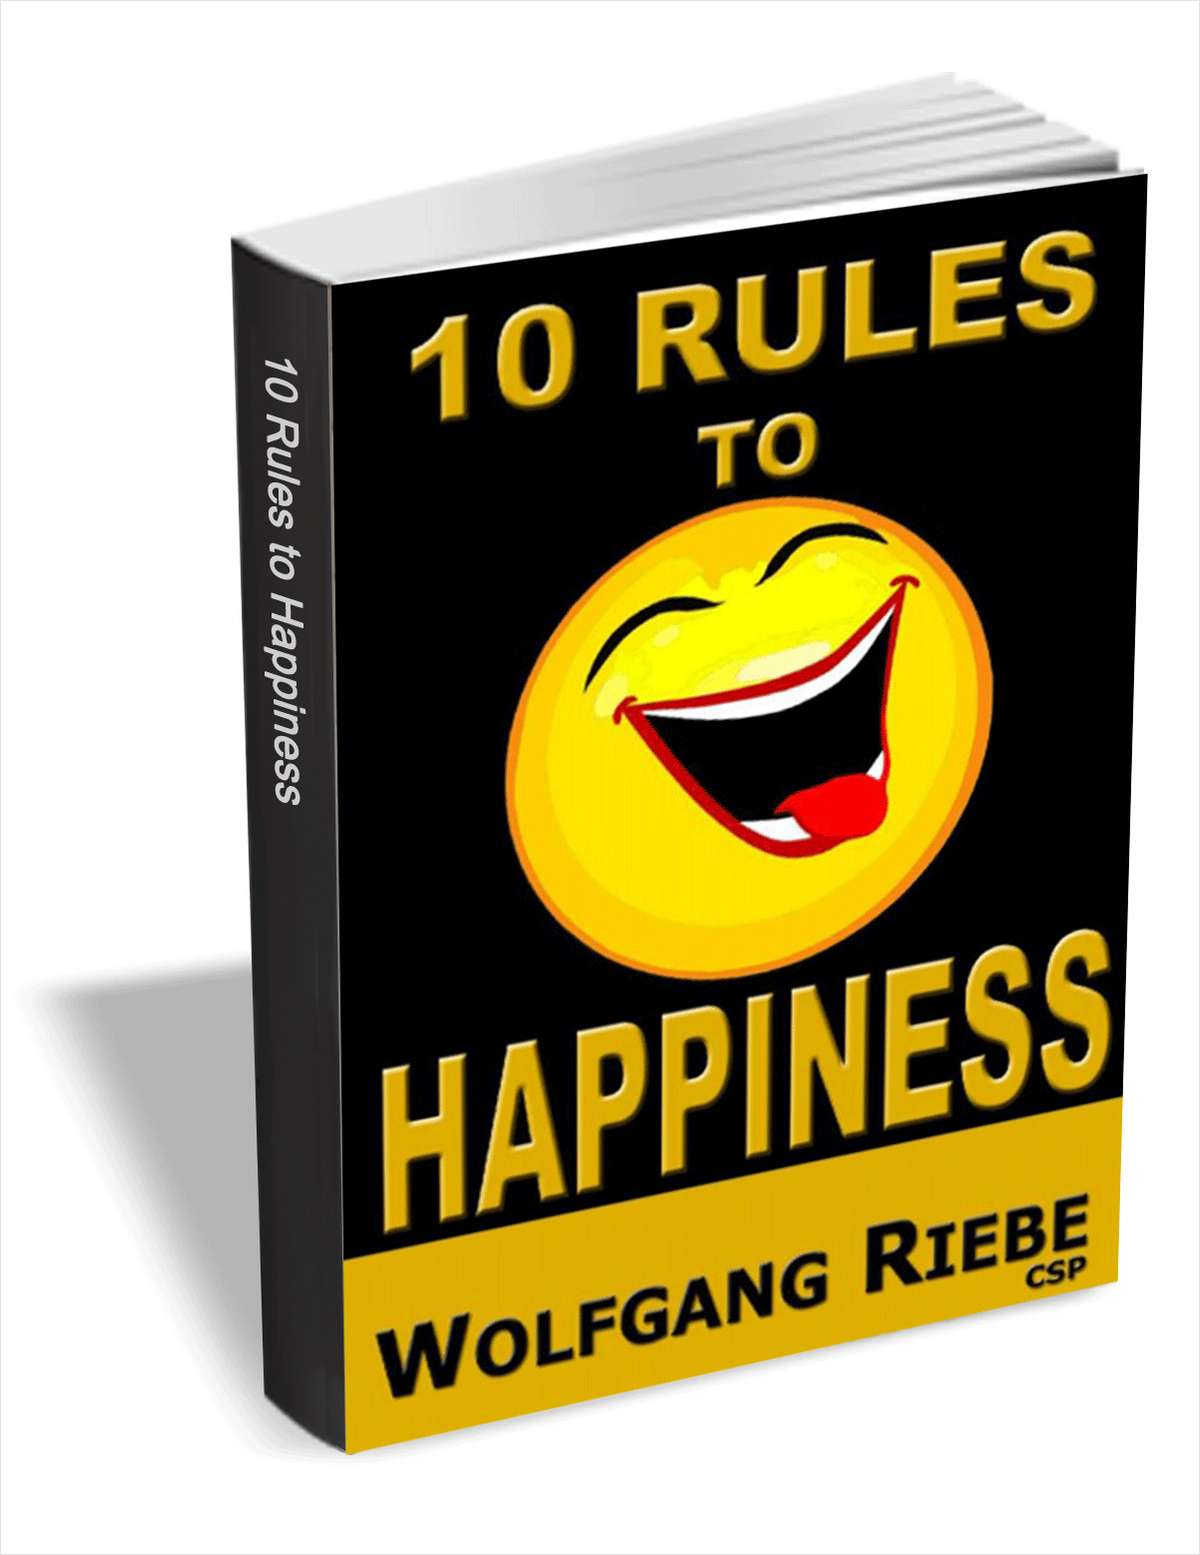 10 Rules to Happiness